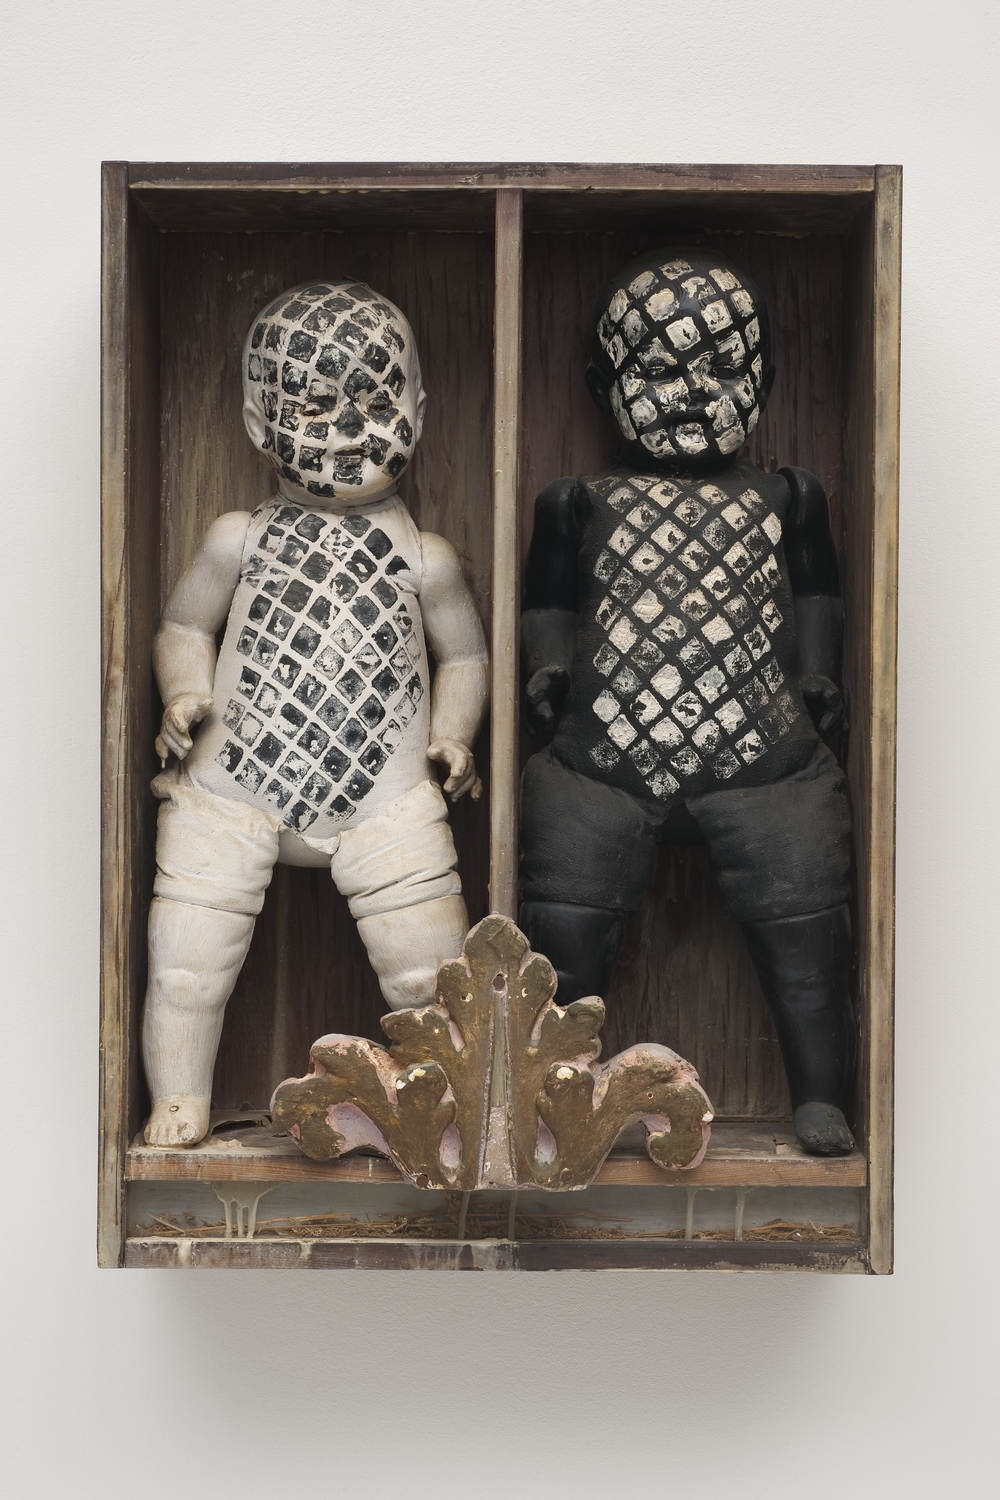 EL113.039 Edward Kienholz It Takes Two to Integrate.jpg